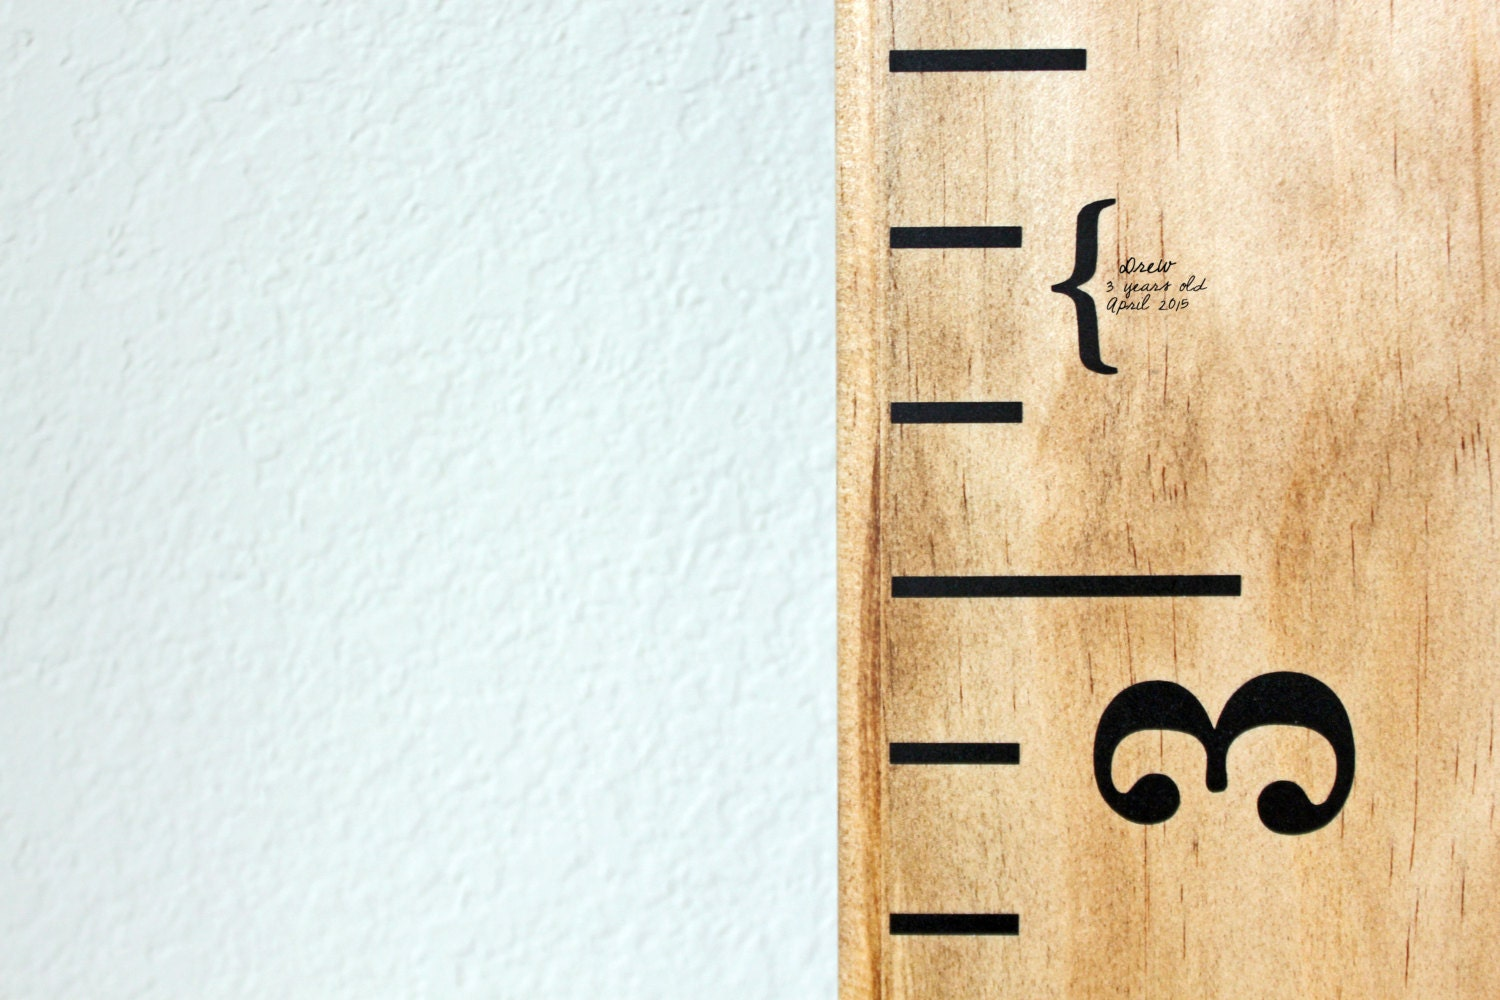 Height Markers For Growth Chart Ruler Vinyl Decal Mini - Ruler growth chart vinyl decal